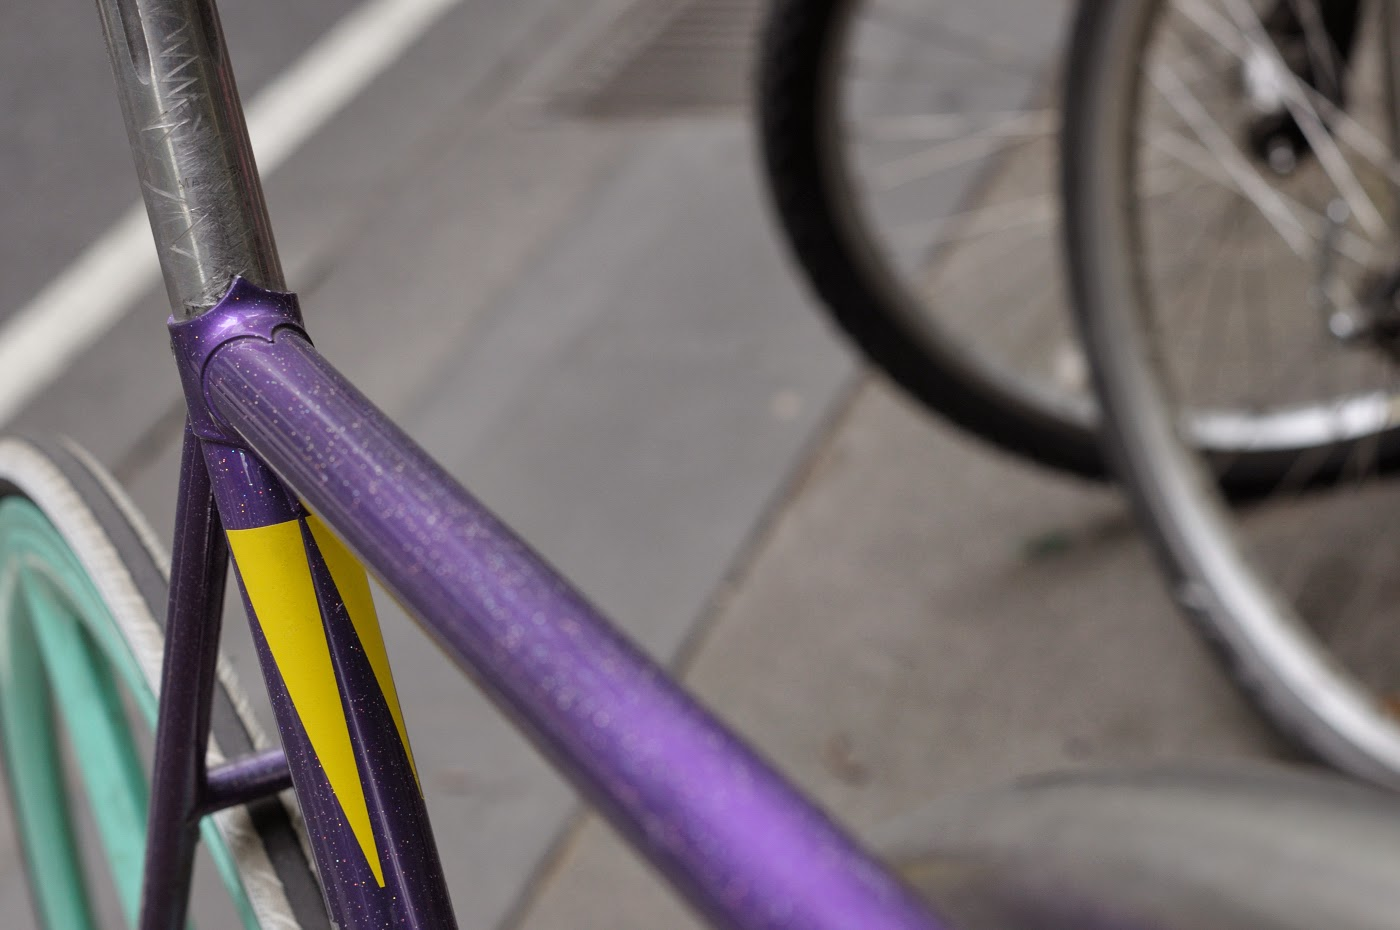 Tim macauley, the biketorialist, biketorialist, IRIBE, single speed, custom, Melbourne, Australia, the light monkey collective, frame, Columbus, respoke, njs, dura-ace, shimano, track frame